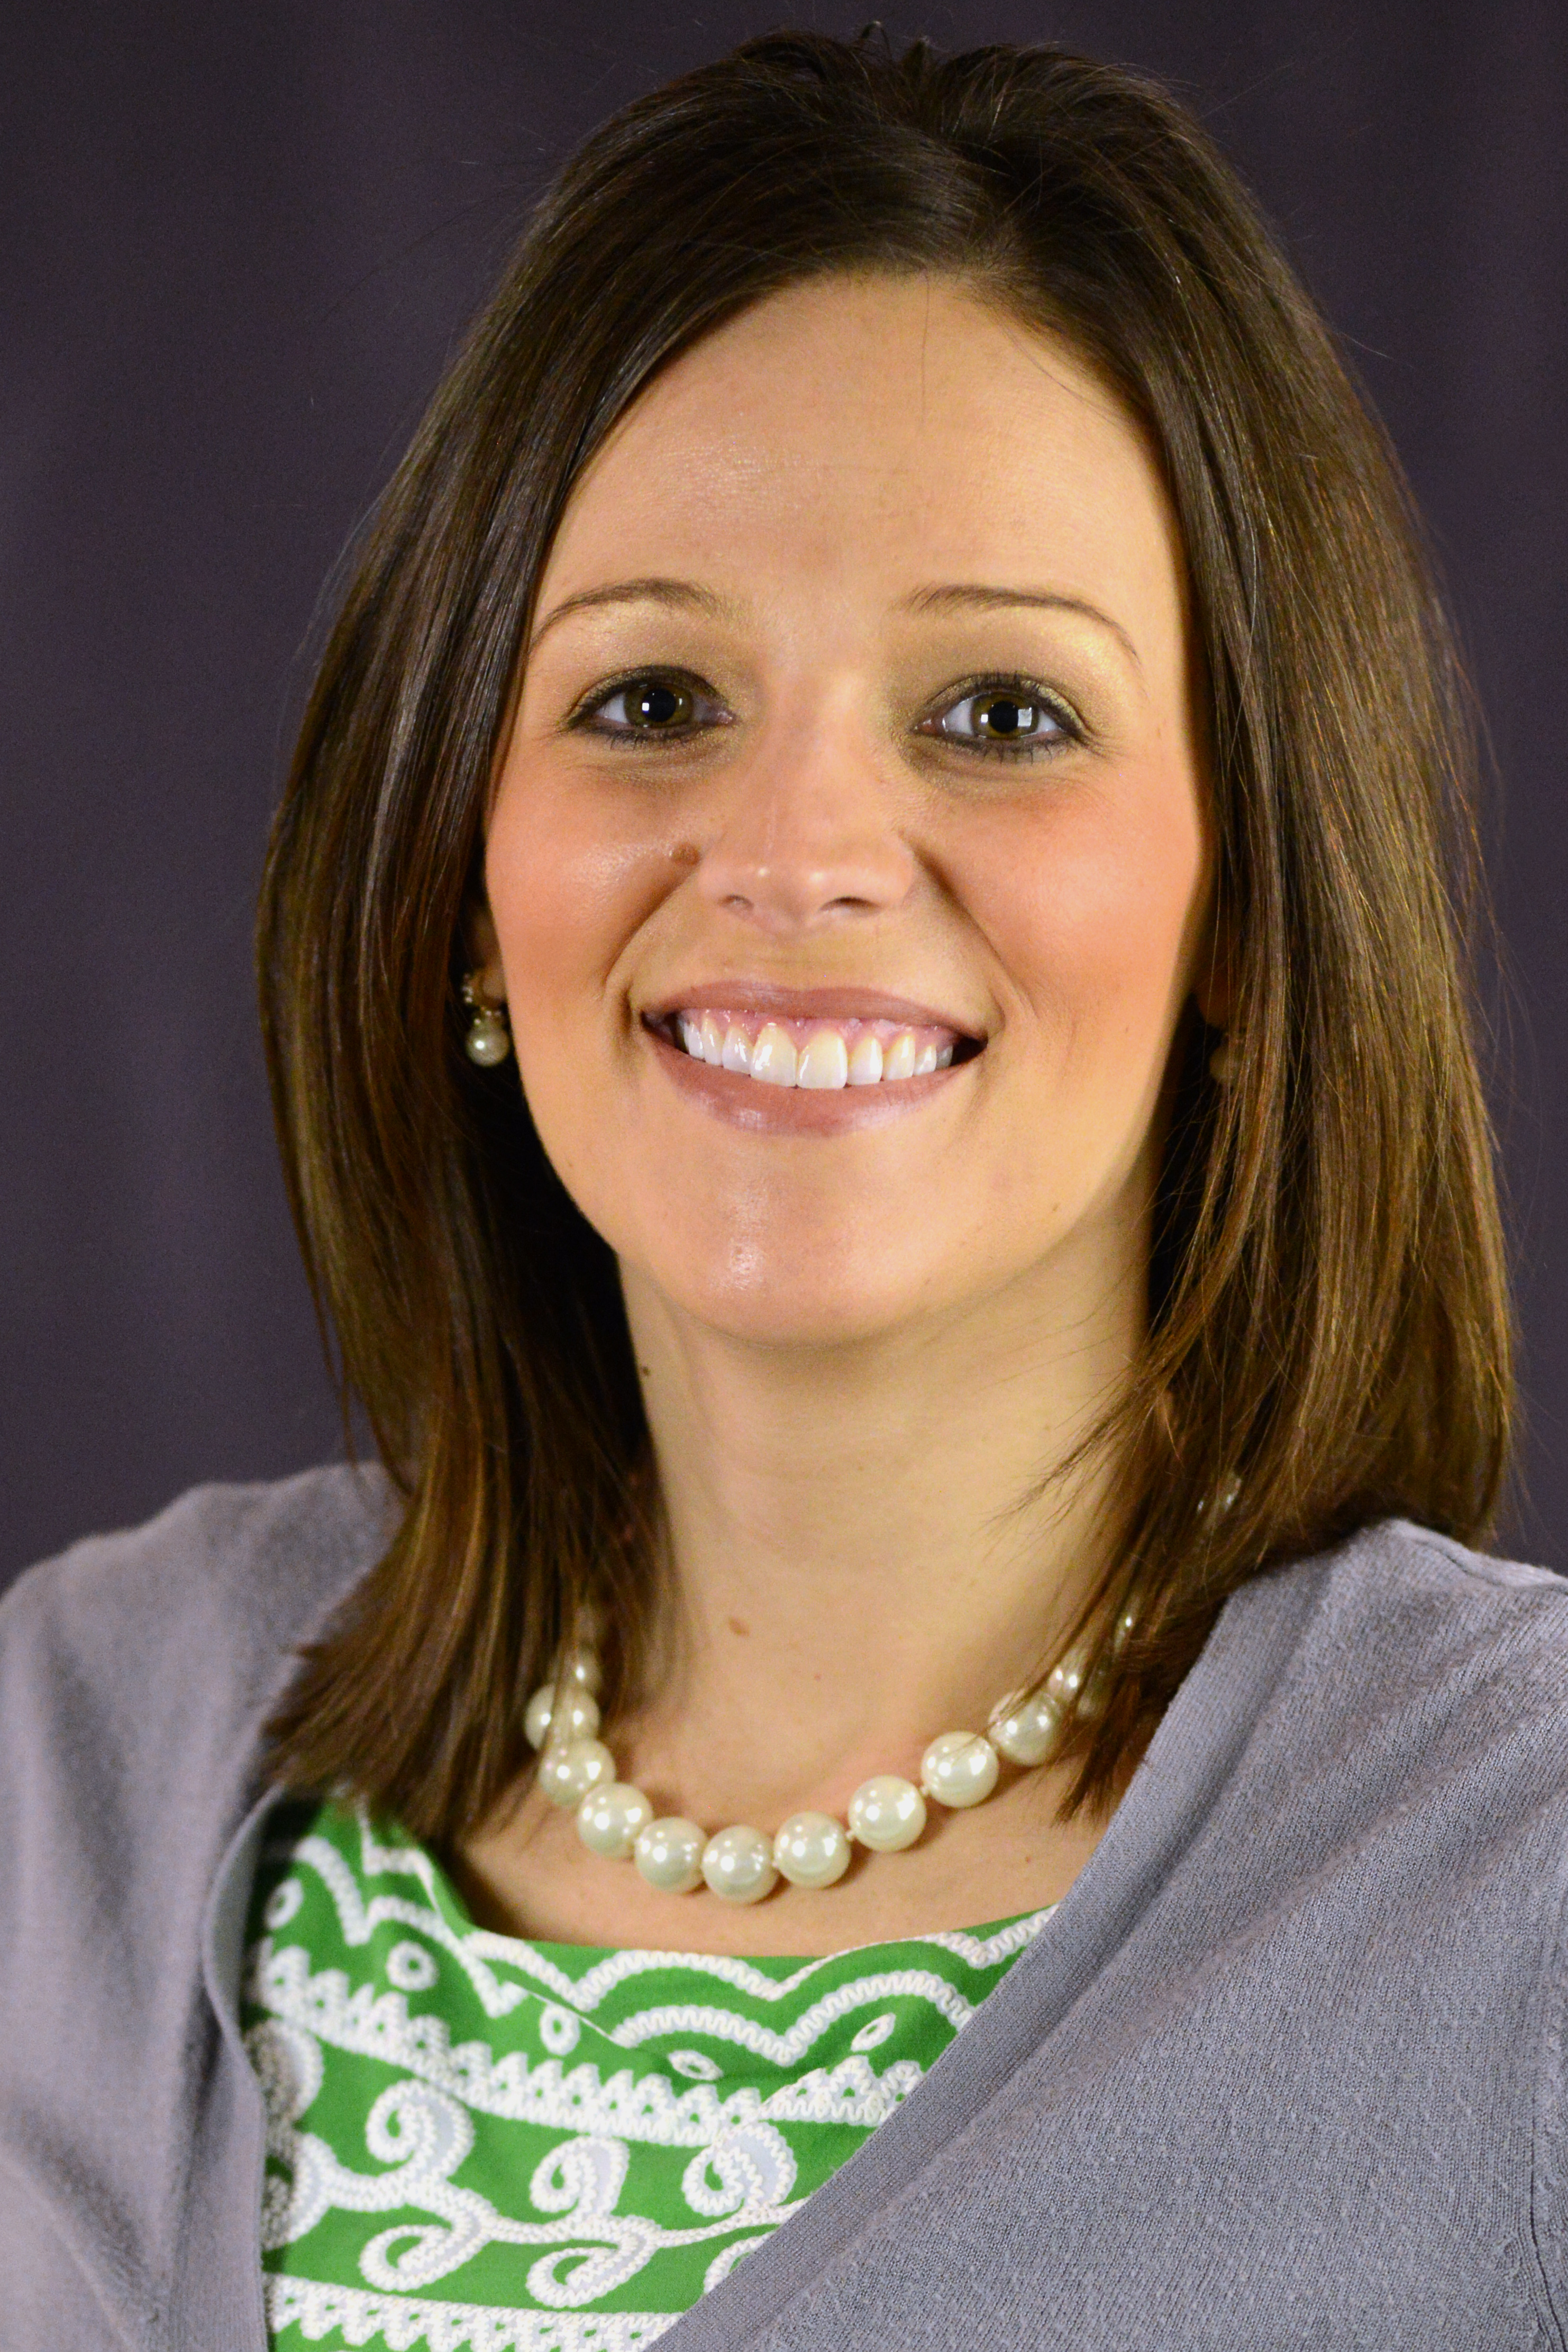 academic advising and success center to open at ncc nash cc news amanda guy director of advising first year experience